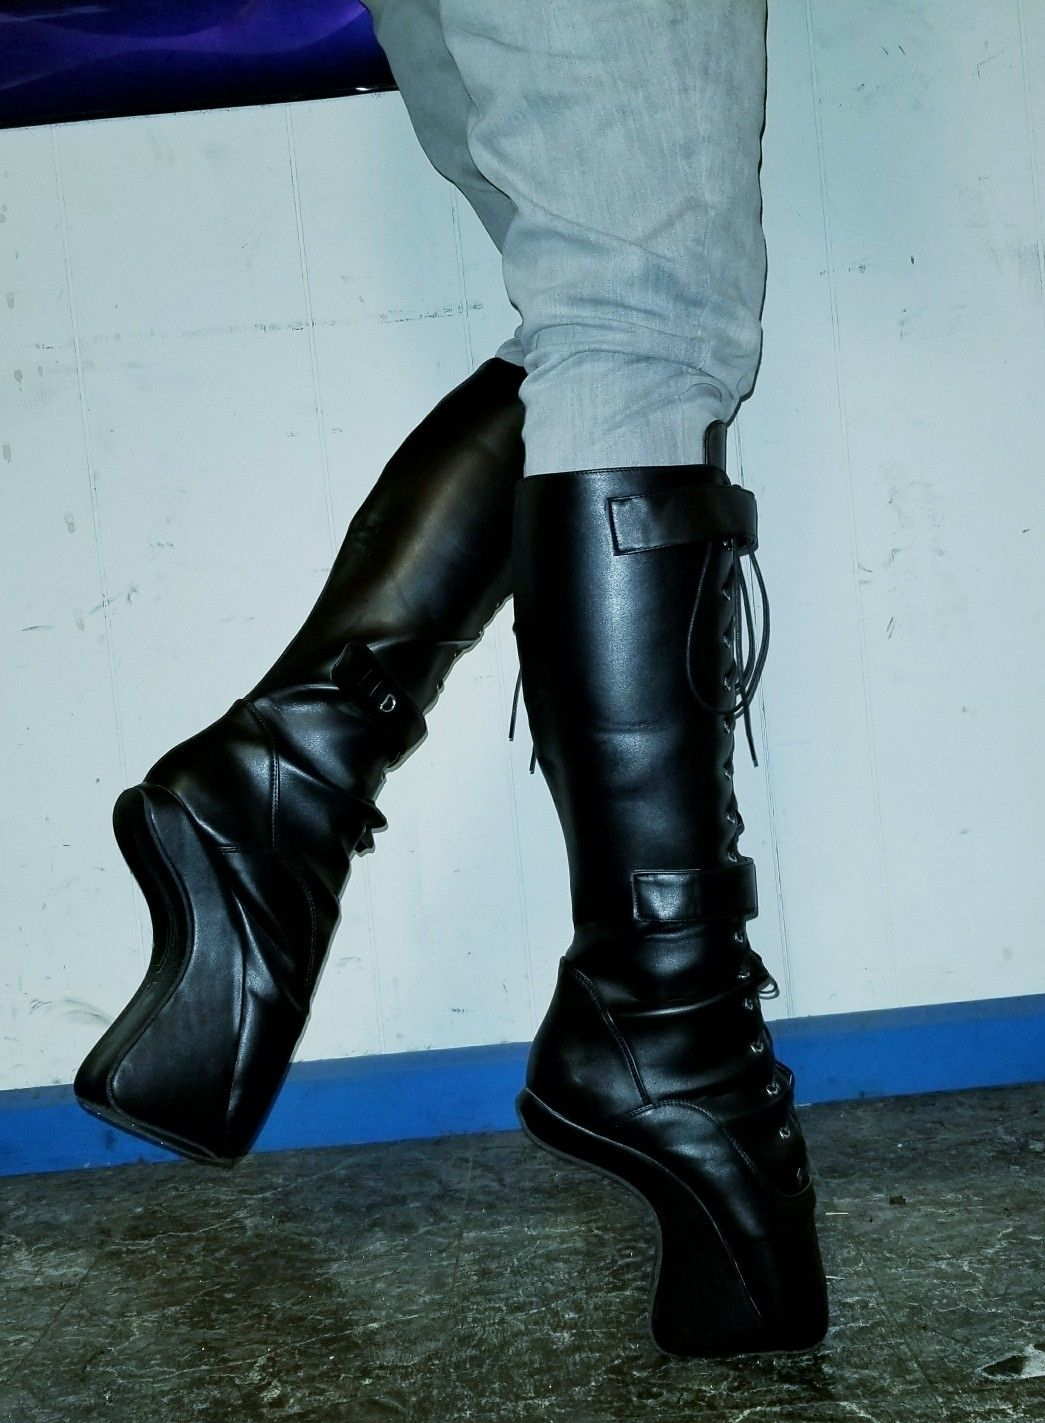 a229fda345fe New ballet boots from Wonderheel(eBay). Much easier to walk in than  traditional ballet boots.